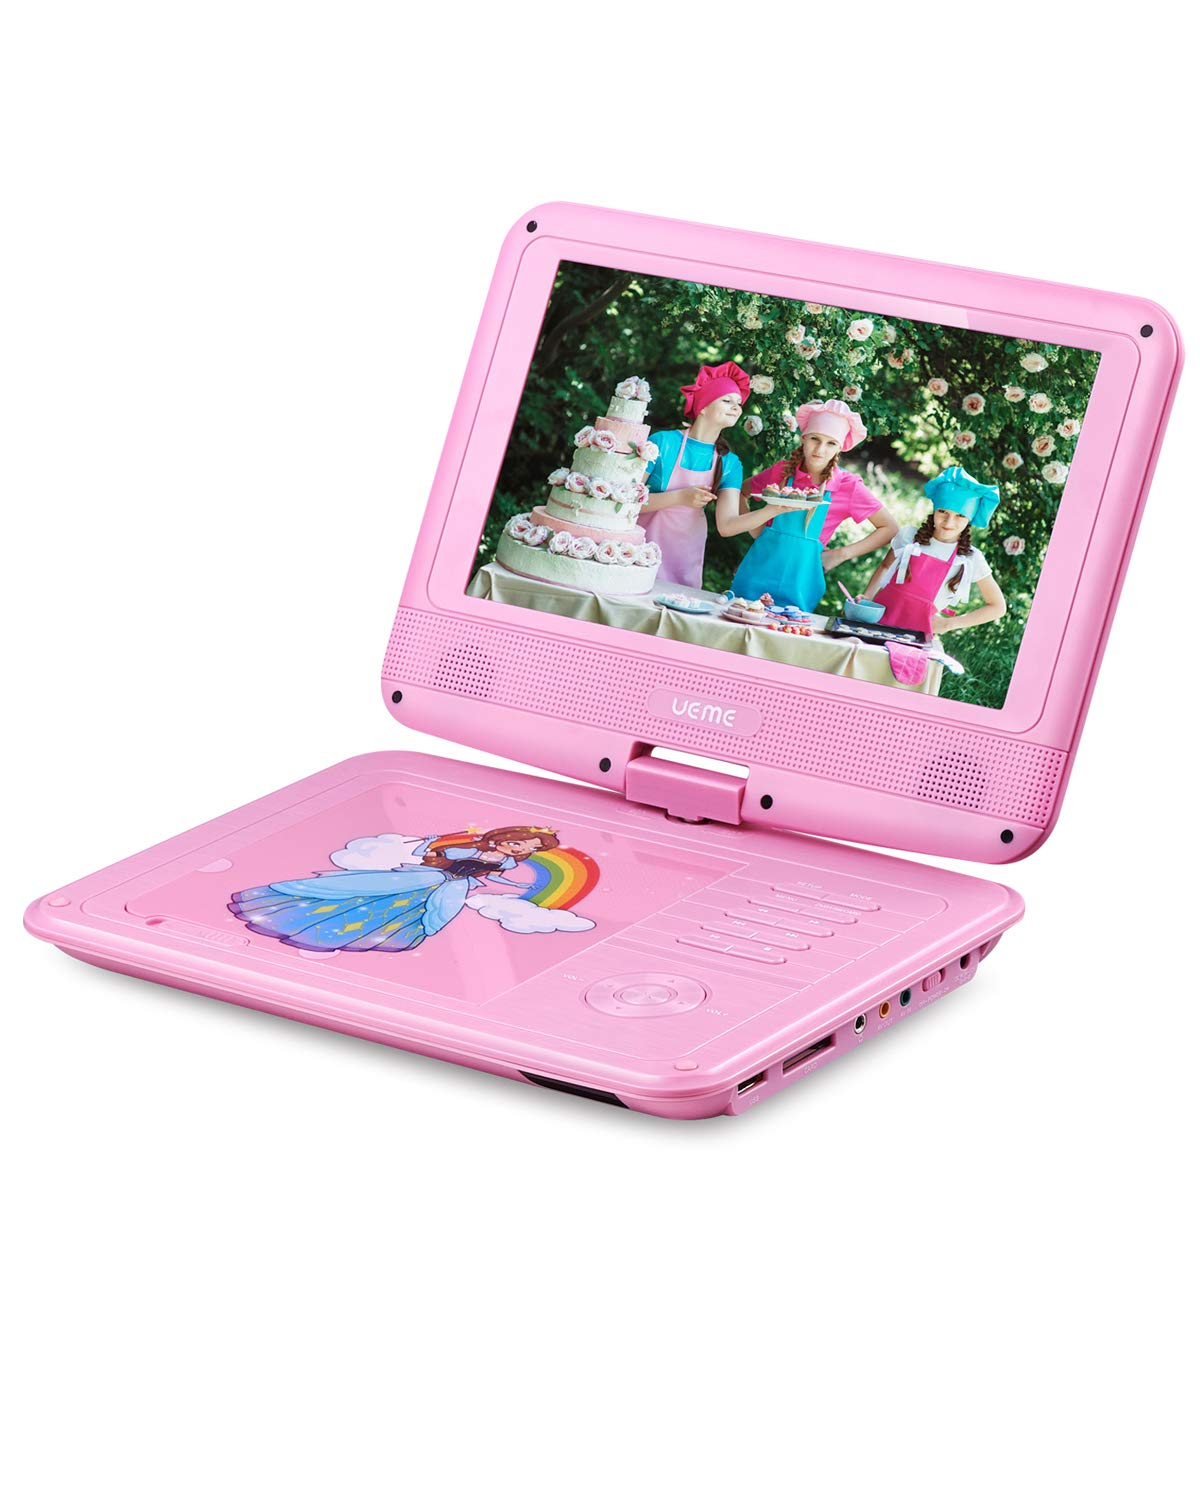 UEME Portable DVD Player with 9 inches Swivel Screen, Car Headrest Mount Holder, Remote Control, Kids DVD Player PD-0093 (Pink) by UEME